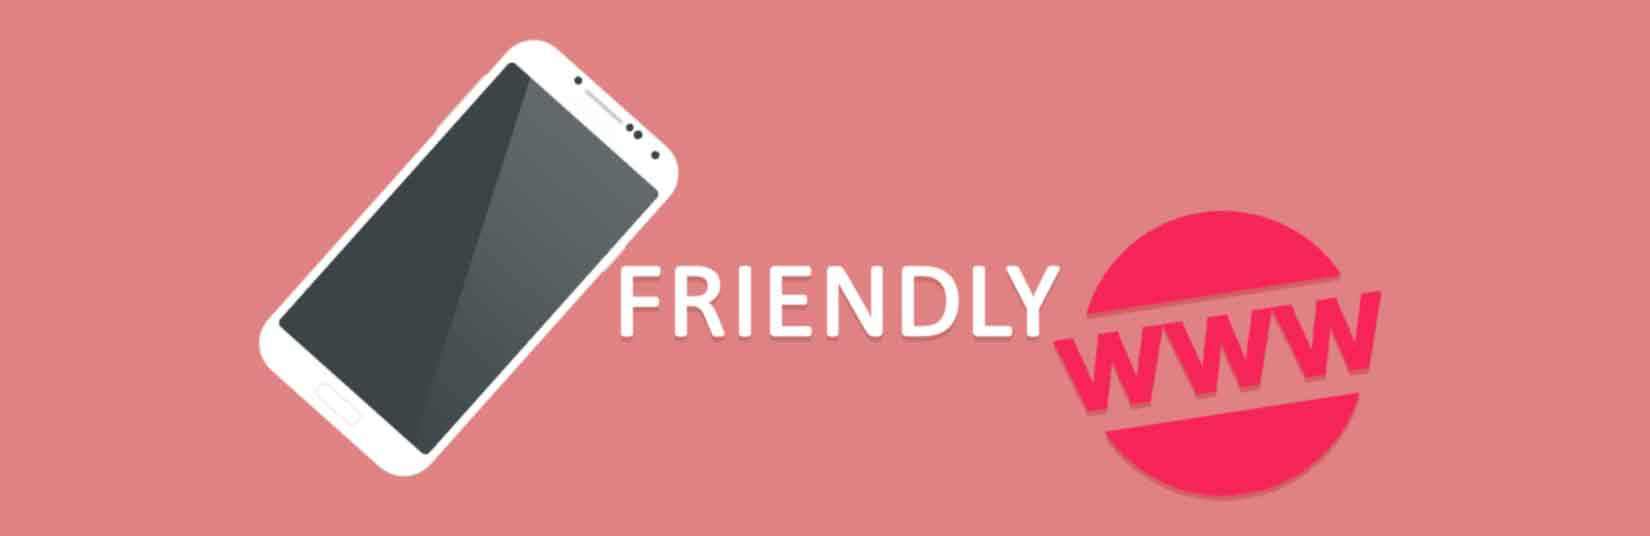 Mobile-friendly websites will dominate